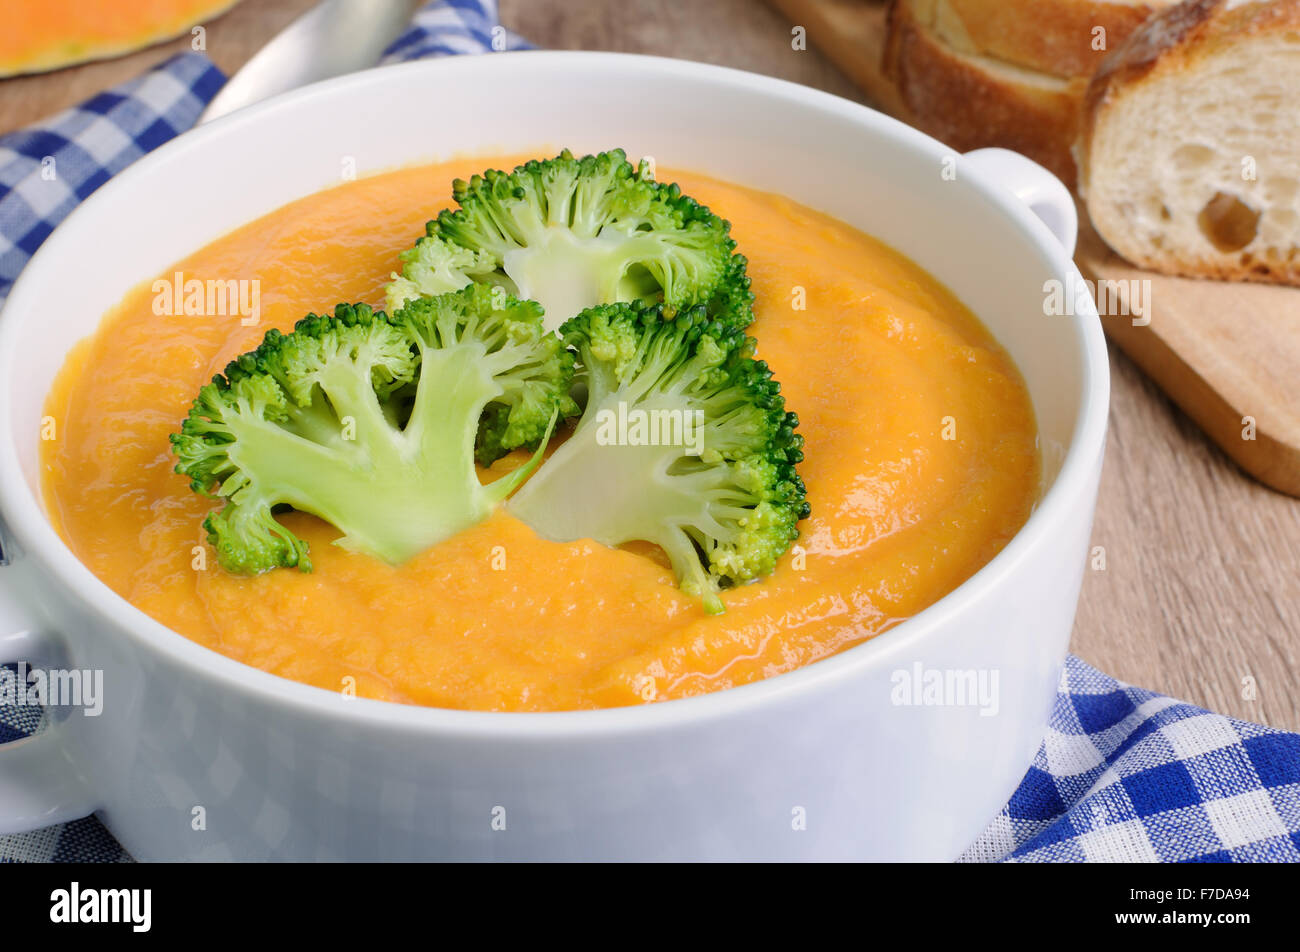 Pumpkin puree soup with cream and parsley on soup plate close-up - Stock Image